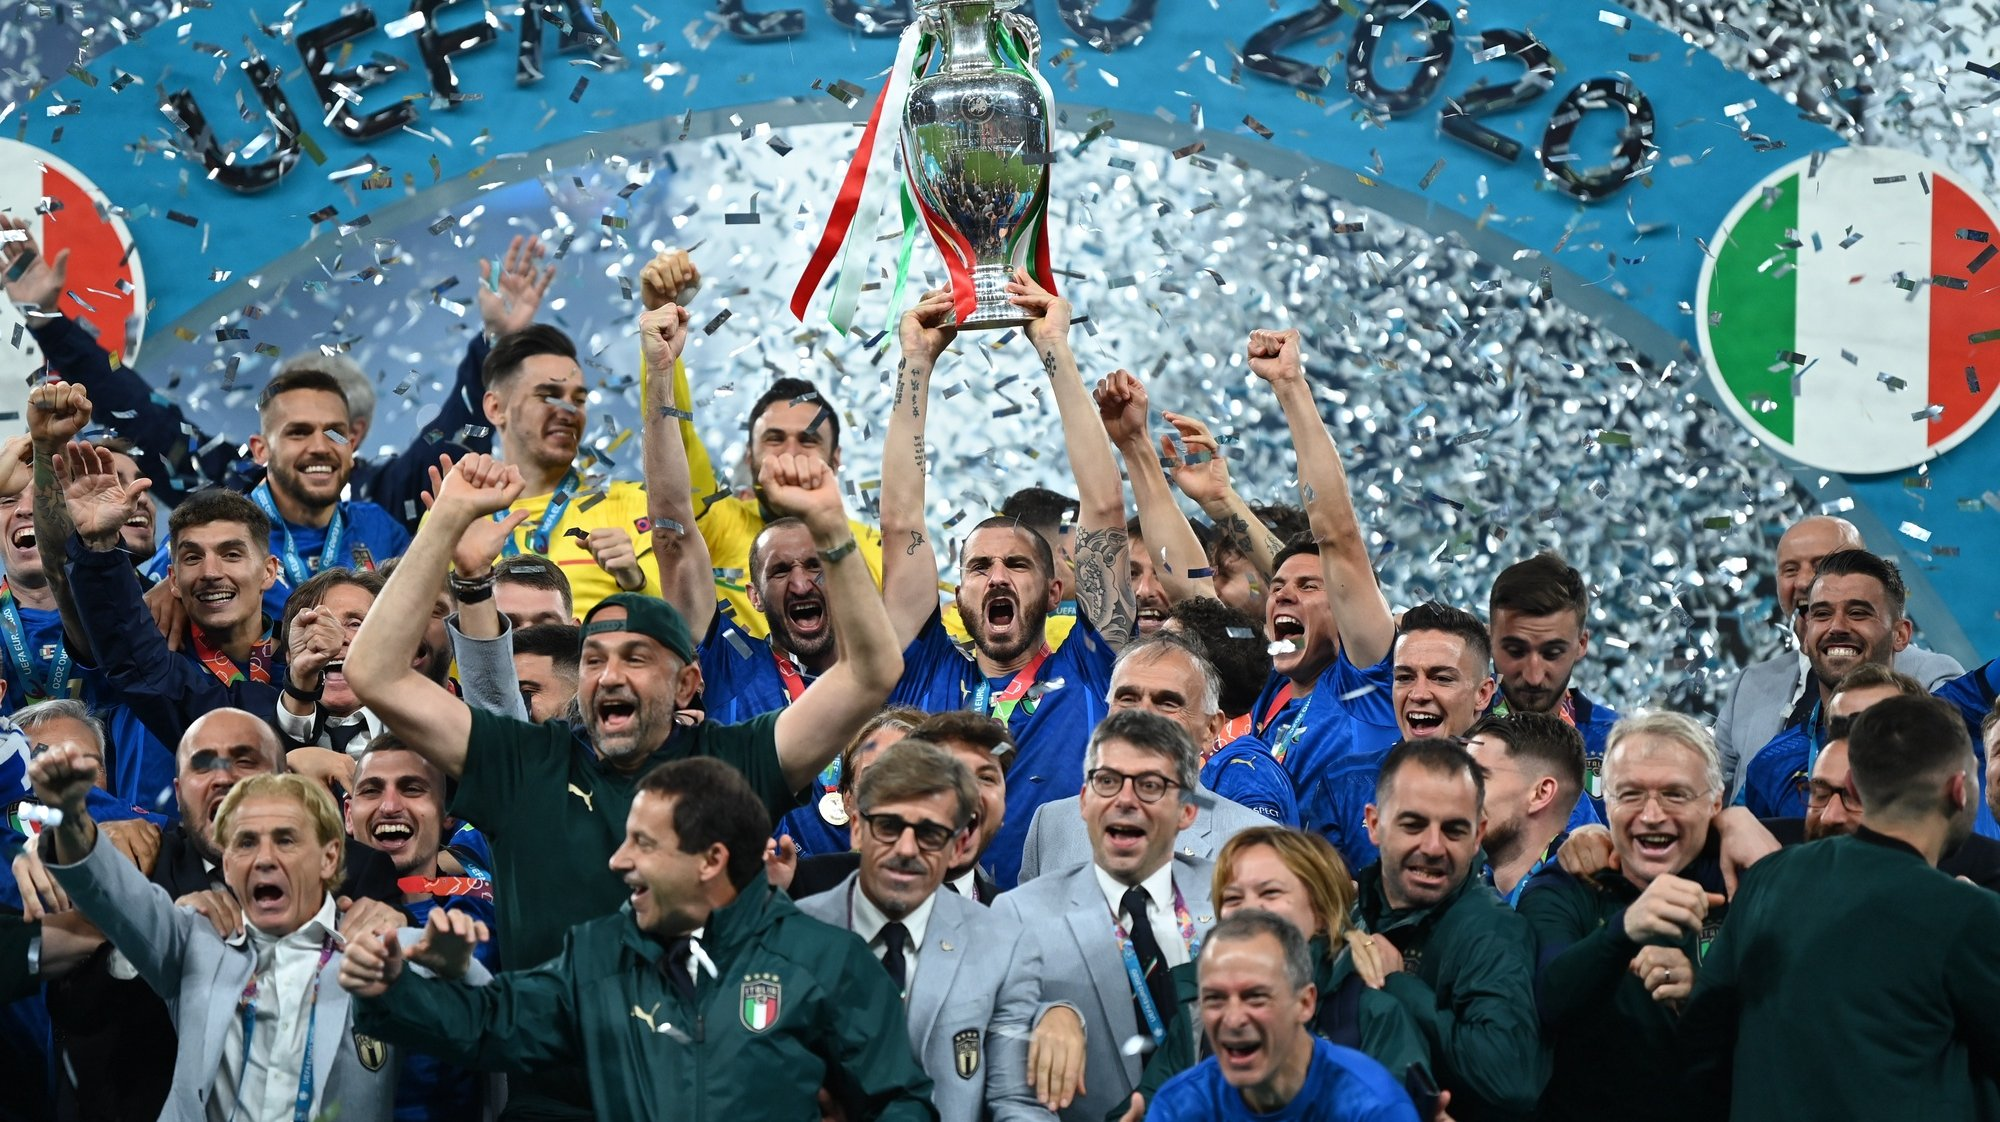 epa09339258 Players of Italy celebrate after winning the UEFA EURO 2020 final between Italy and England in London, Britain, 11 July 2021.  EPA/Michael Regan / POOL (RESTRICTIONS: For editorial news reporting purposes only. Images must appear as still images and must not emulate match action video footage. Photographs published in online publications shall have an interval of at least 20 seconds between the posting.)